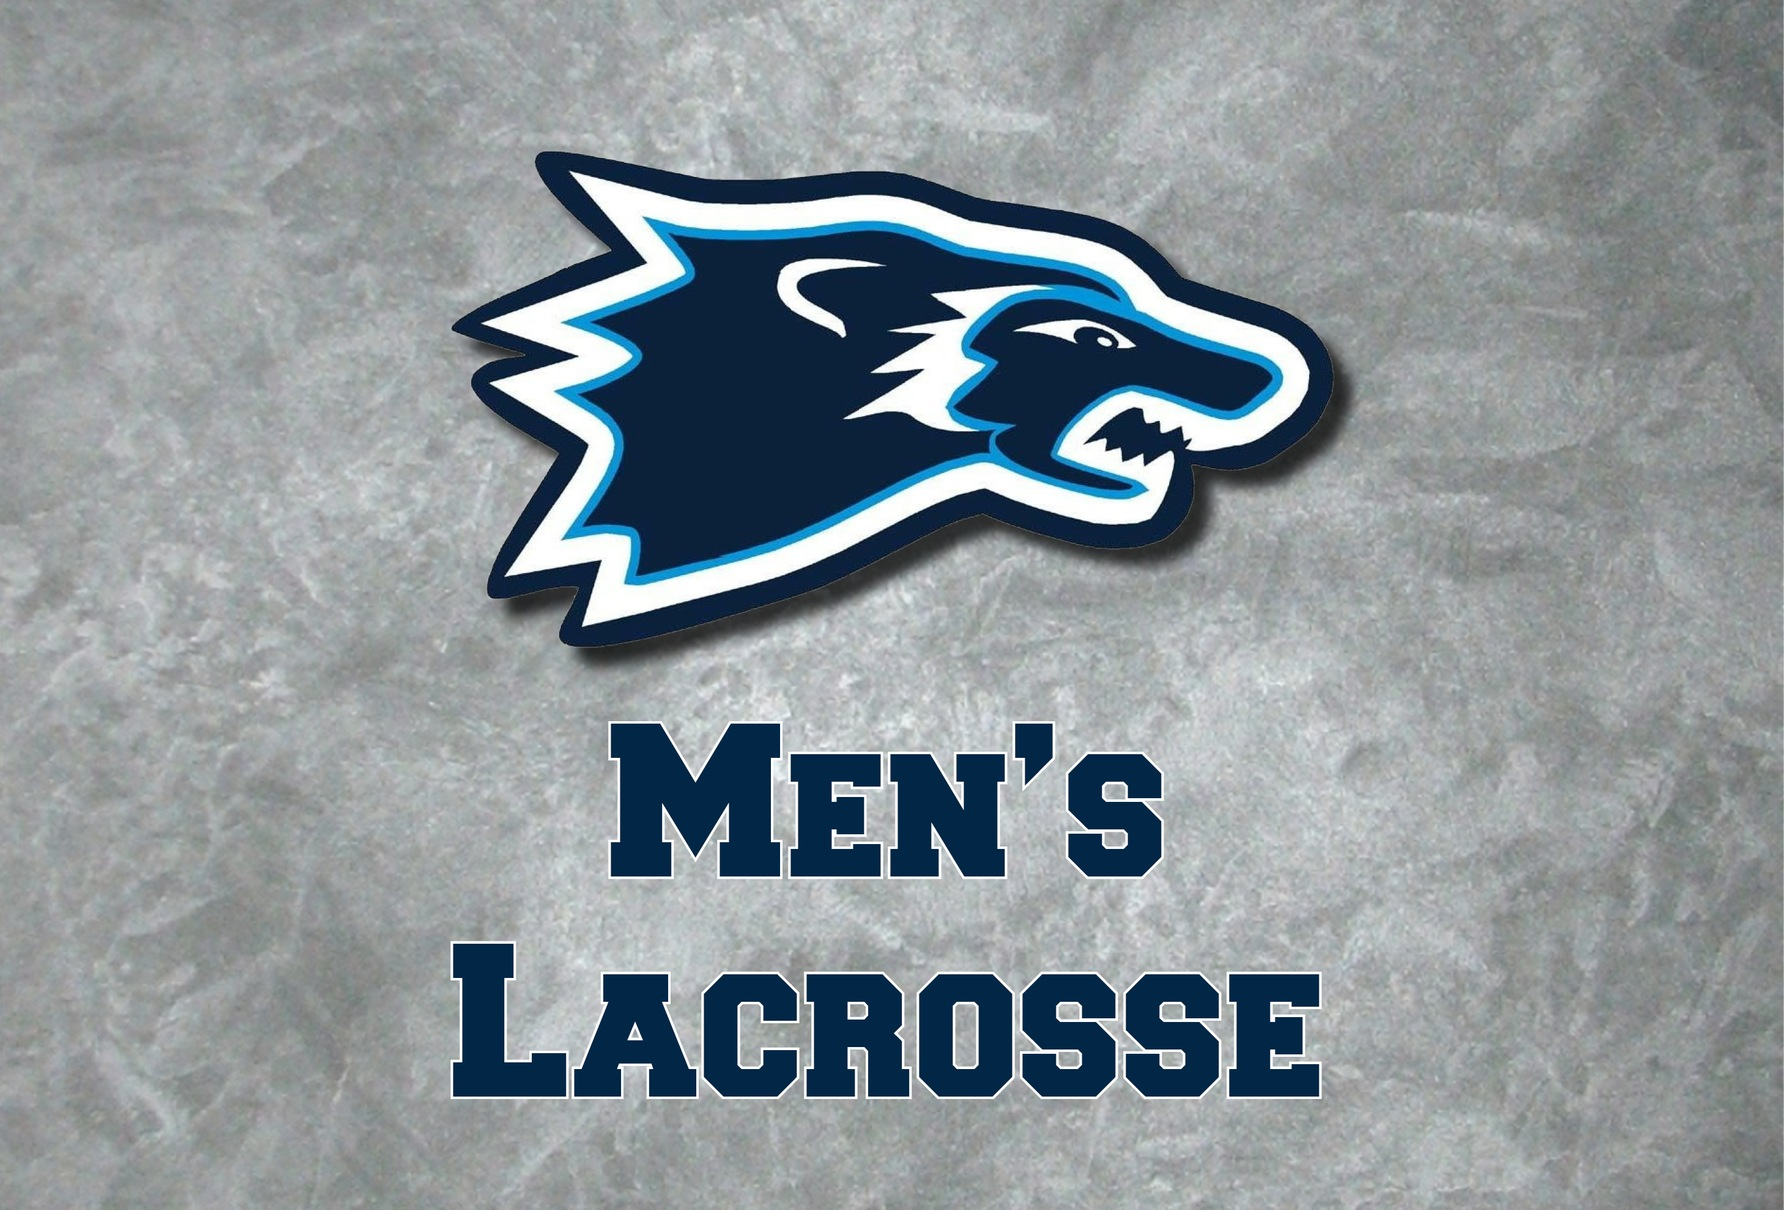 Preview: Wesley men's lacrosse hungry for 2017 season